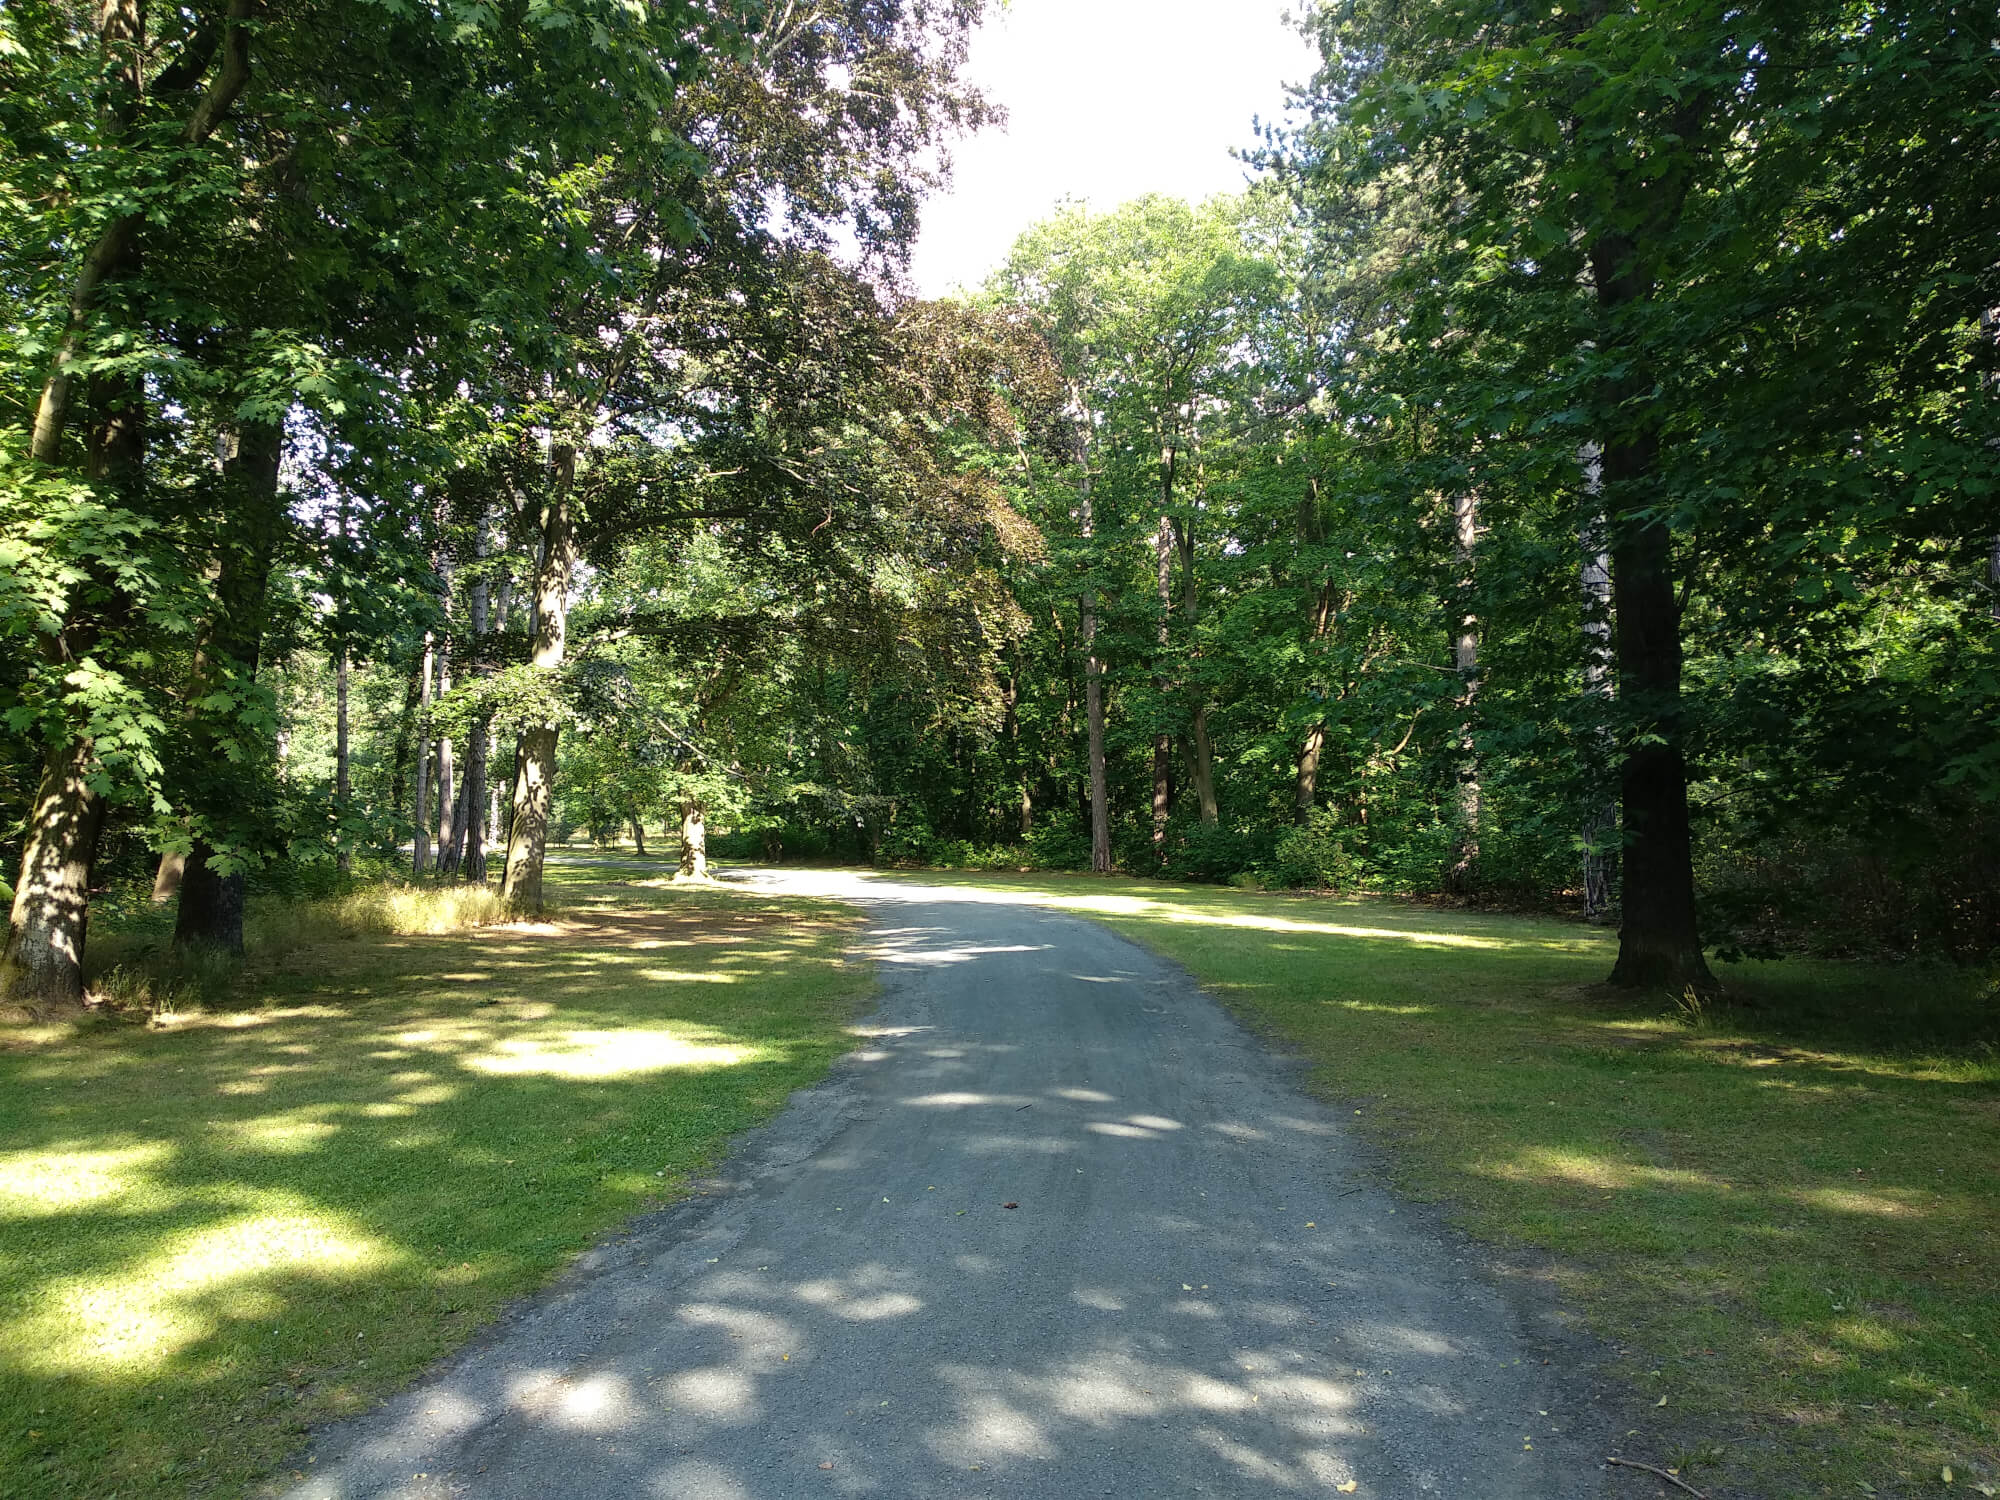 A path through the park